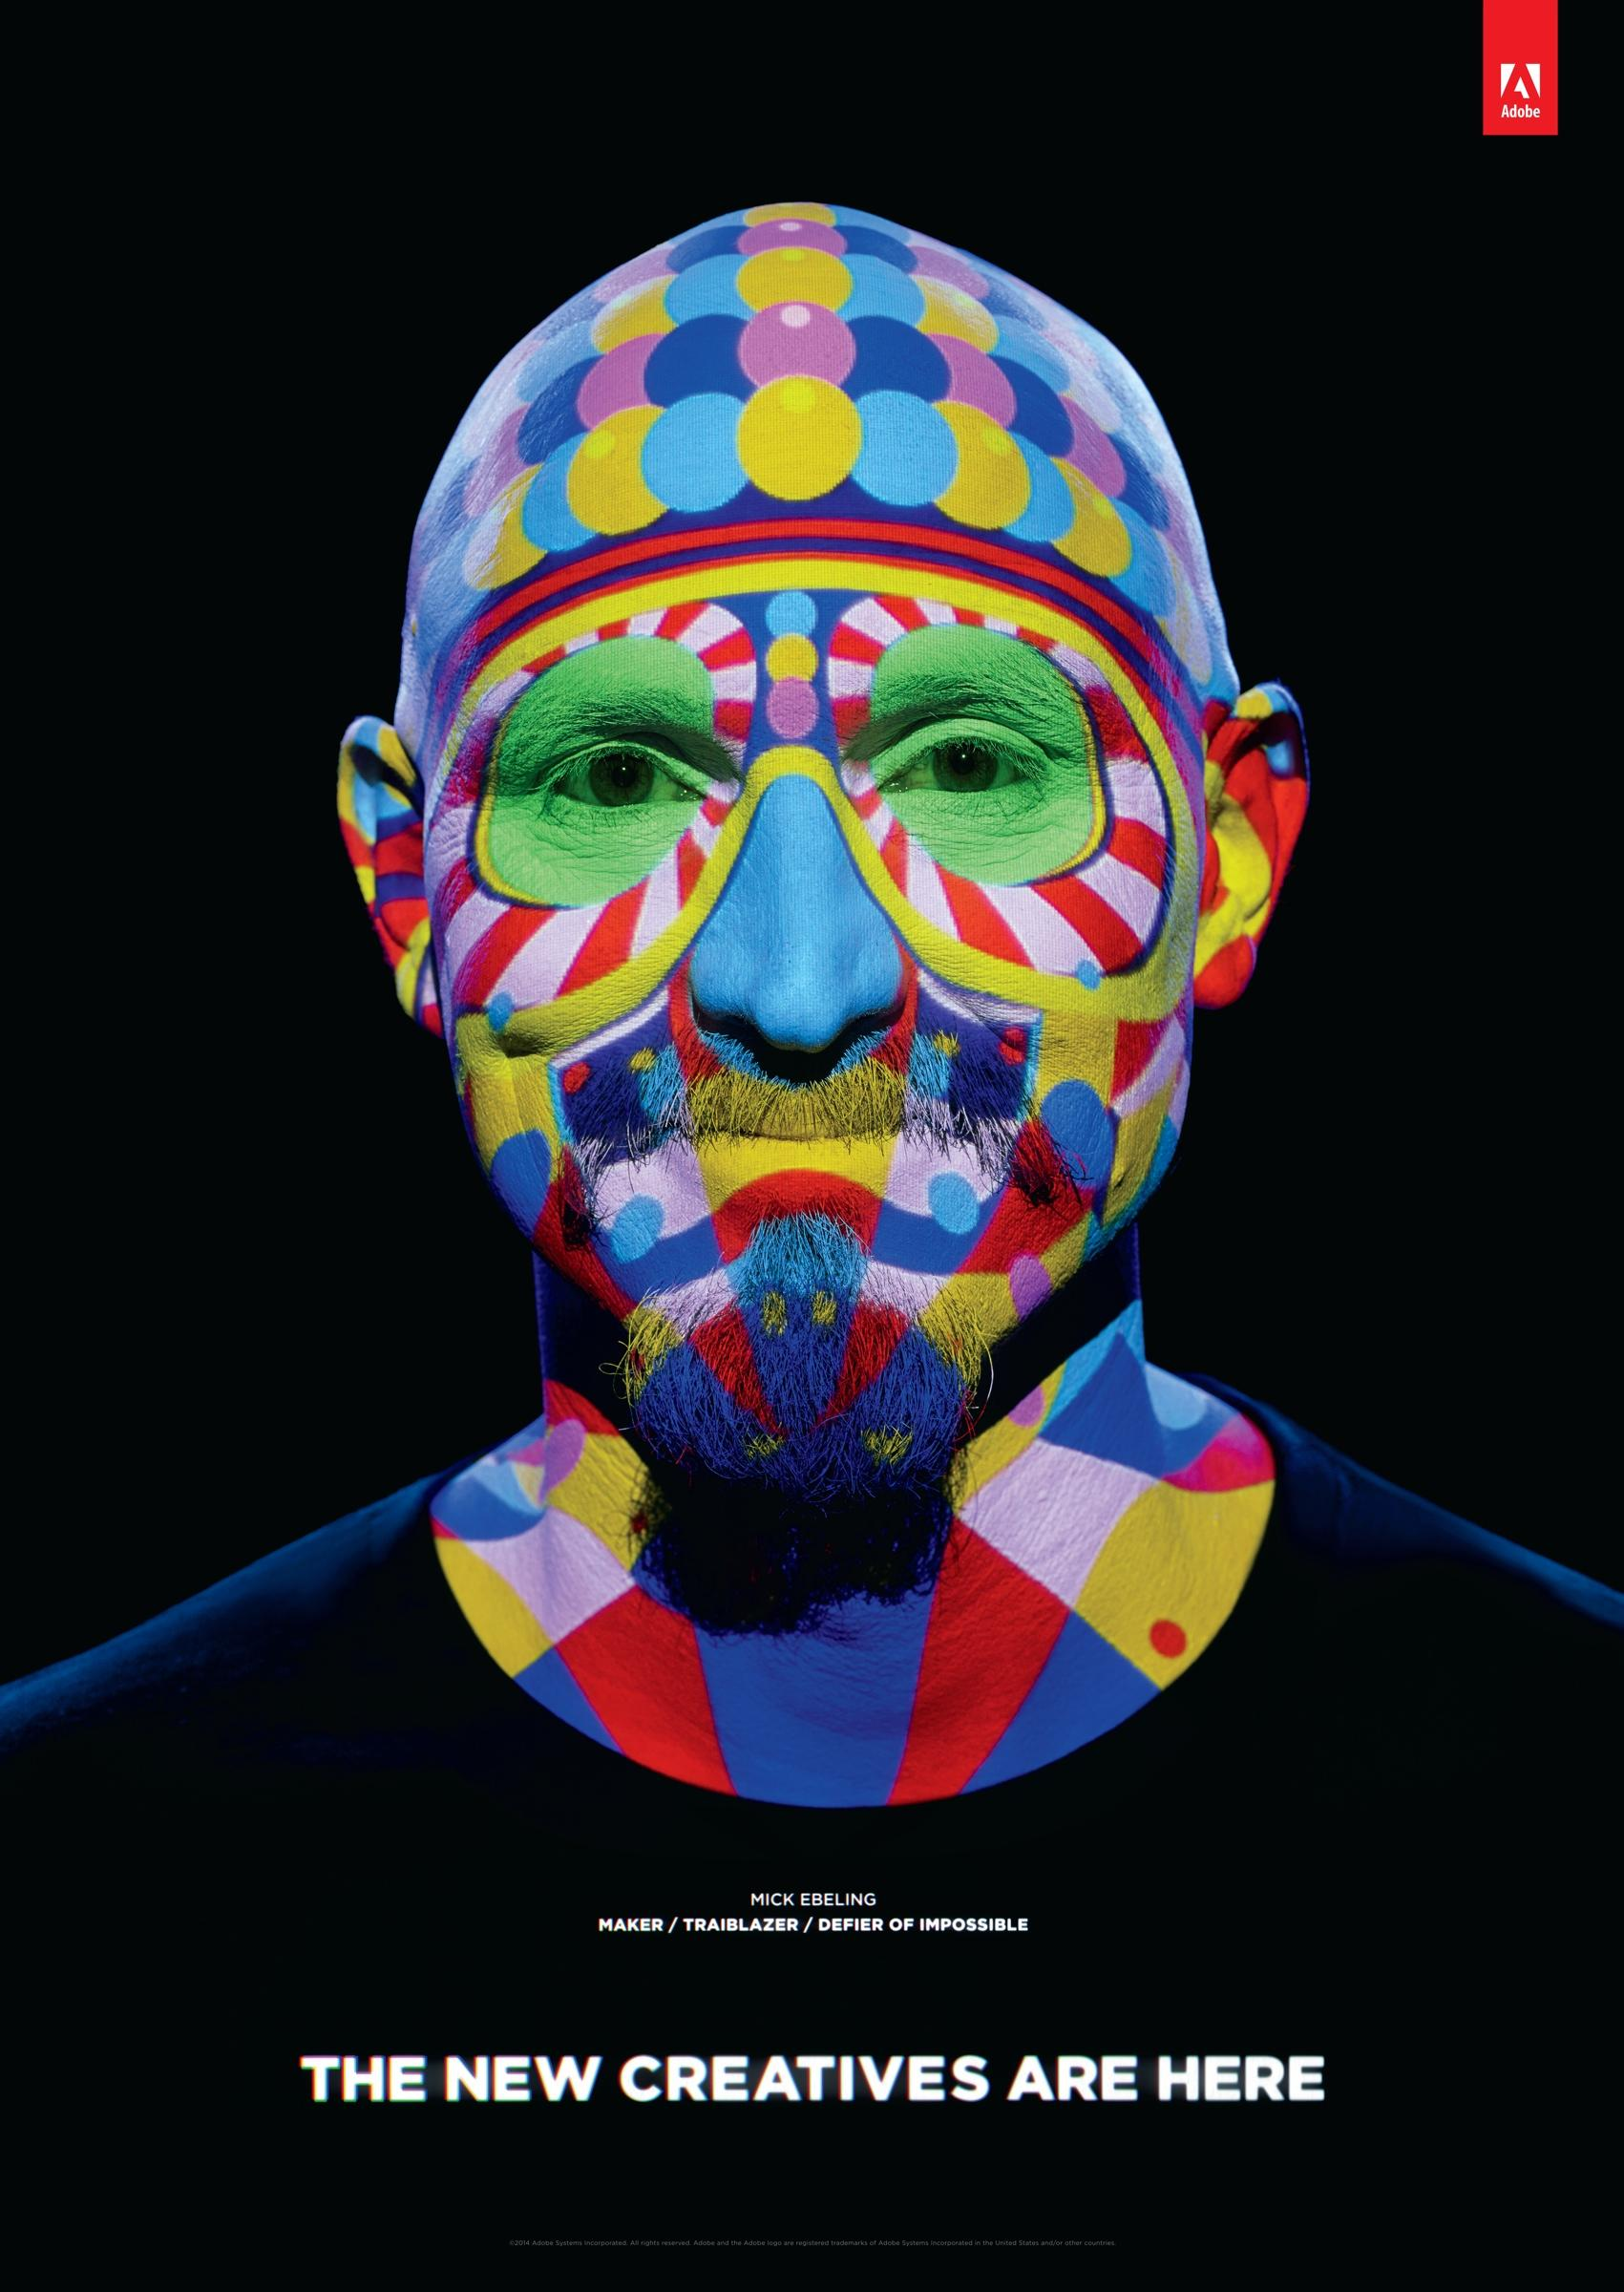 Adobe Print Ad -  Welcome to Cannes, Mick Ebeling